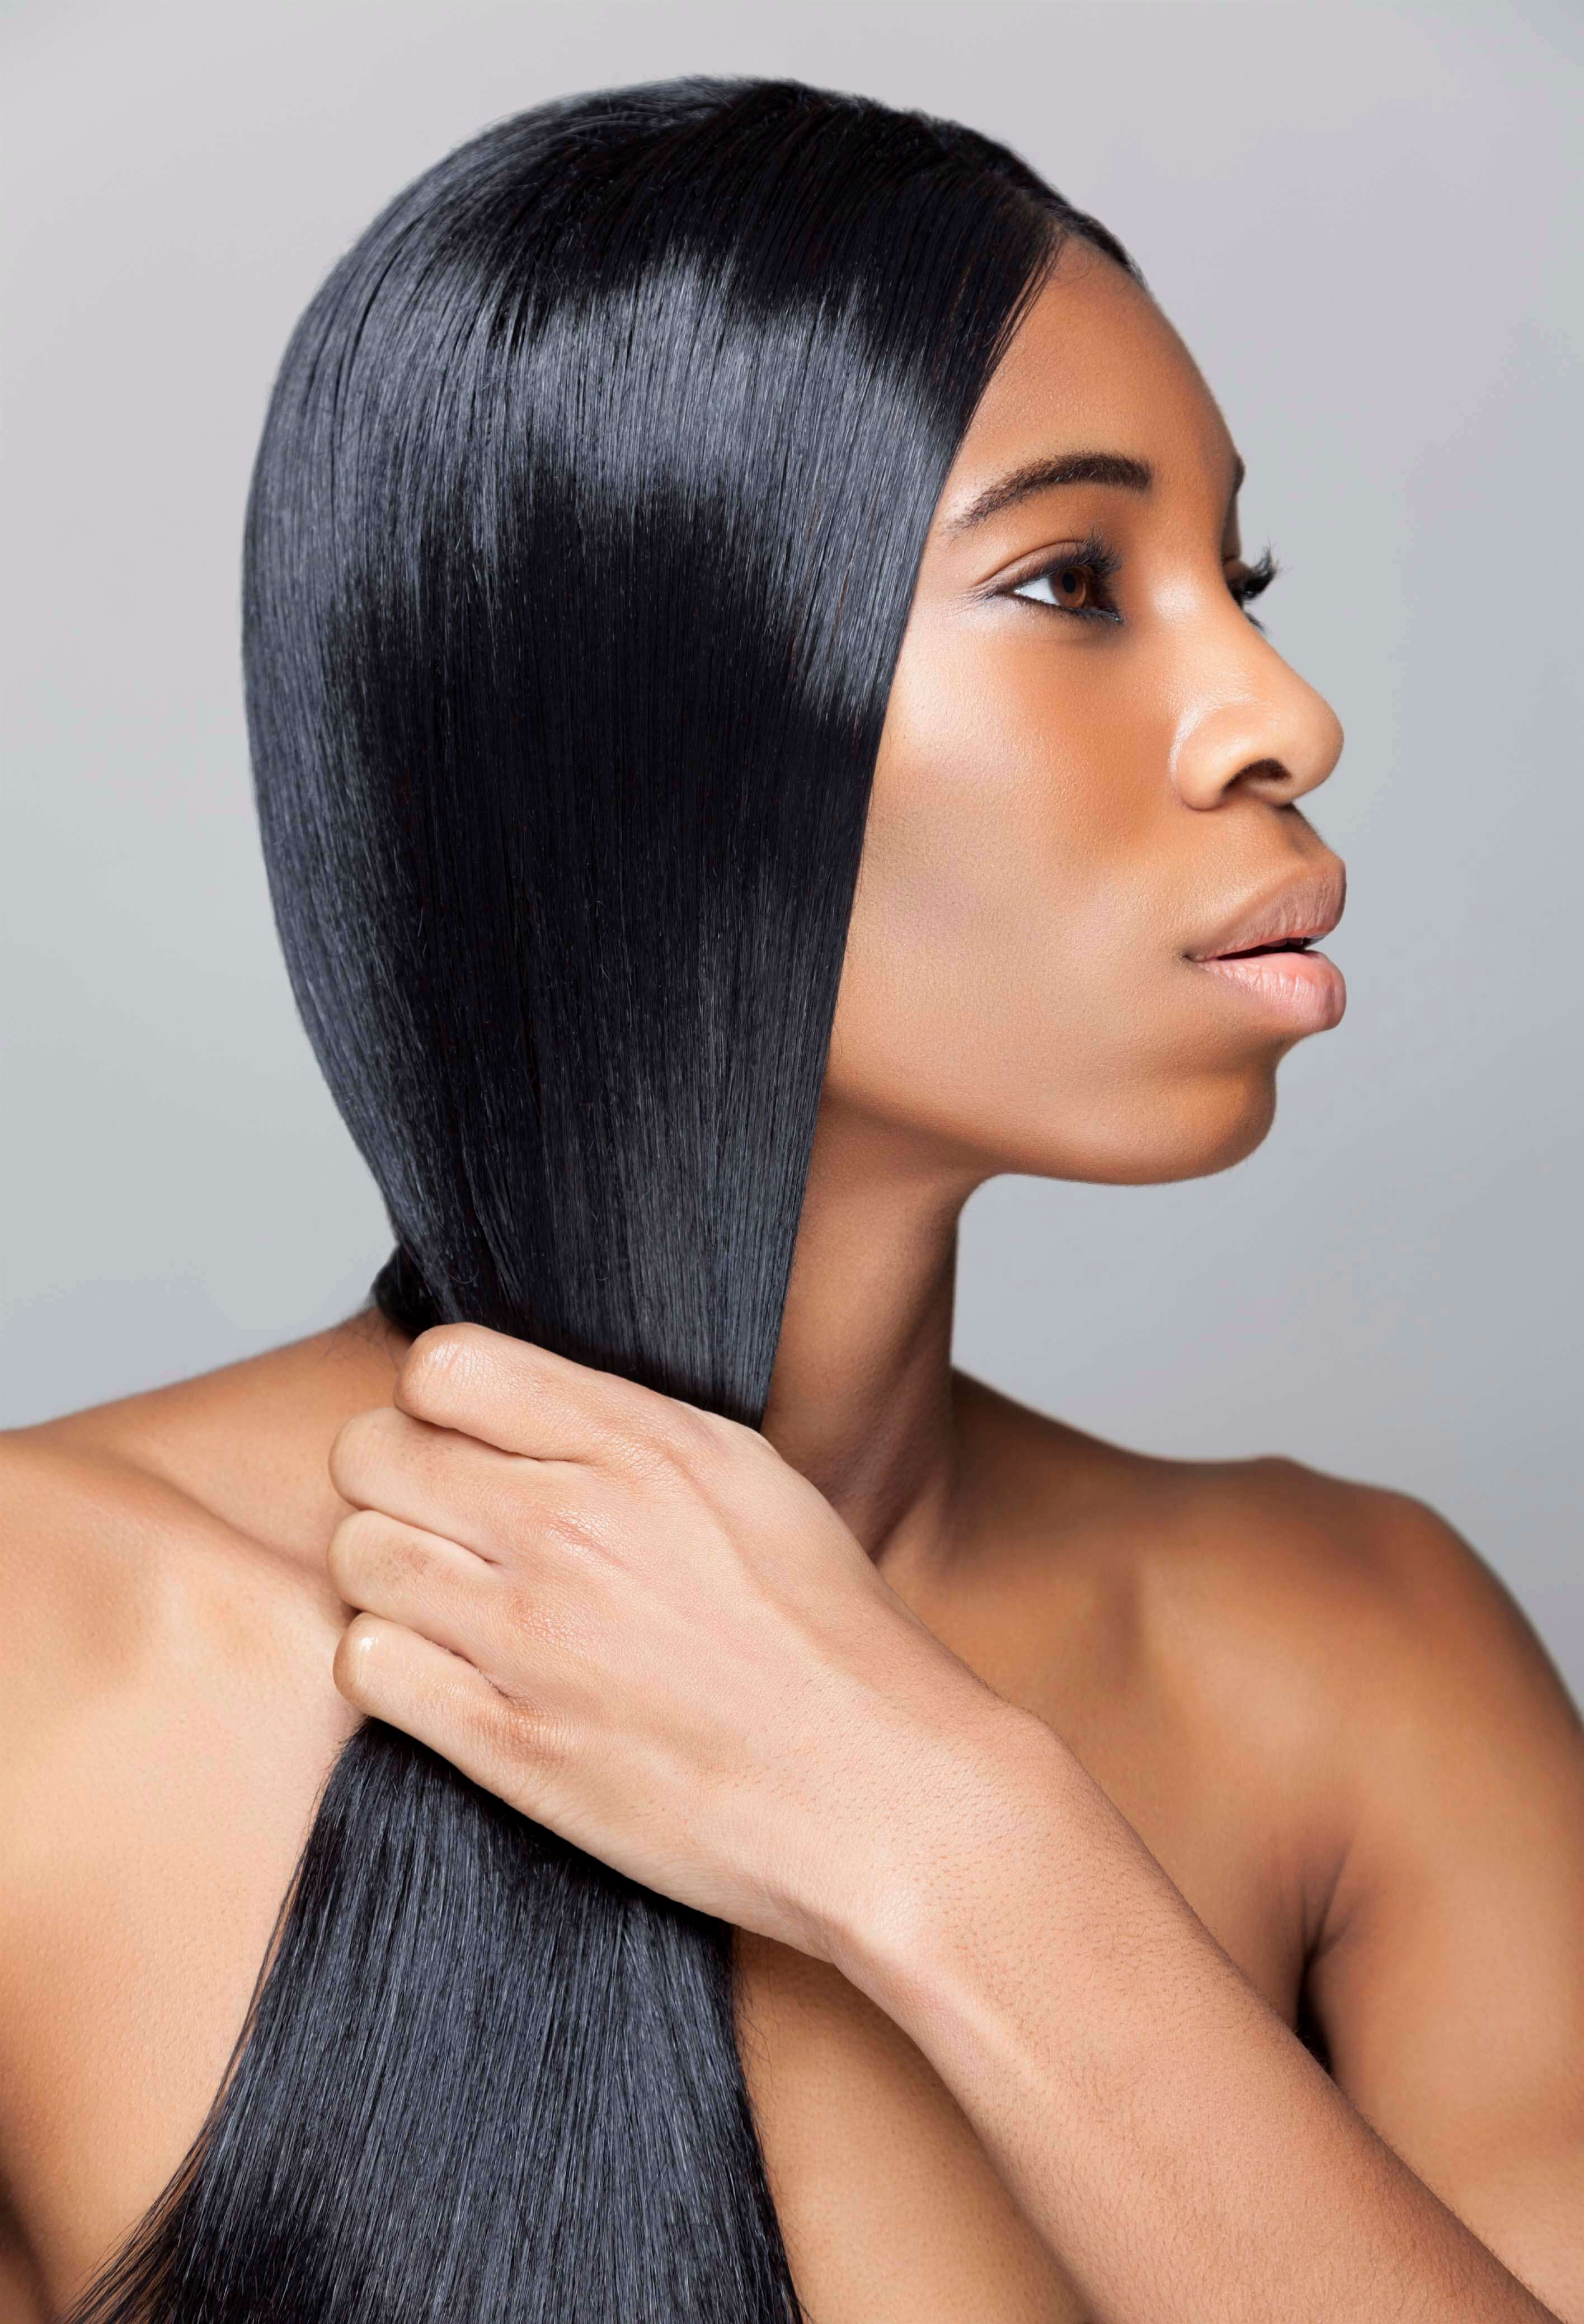 Taking care of relaxed hair: Our top 5 tips | All Things